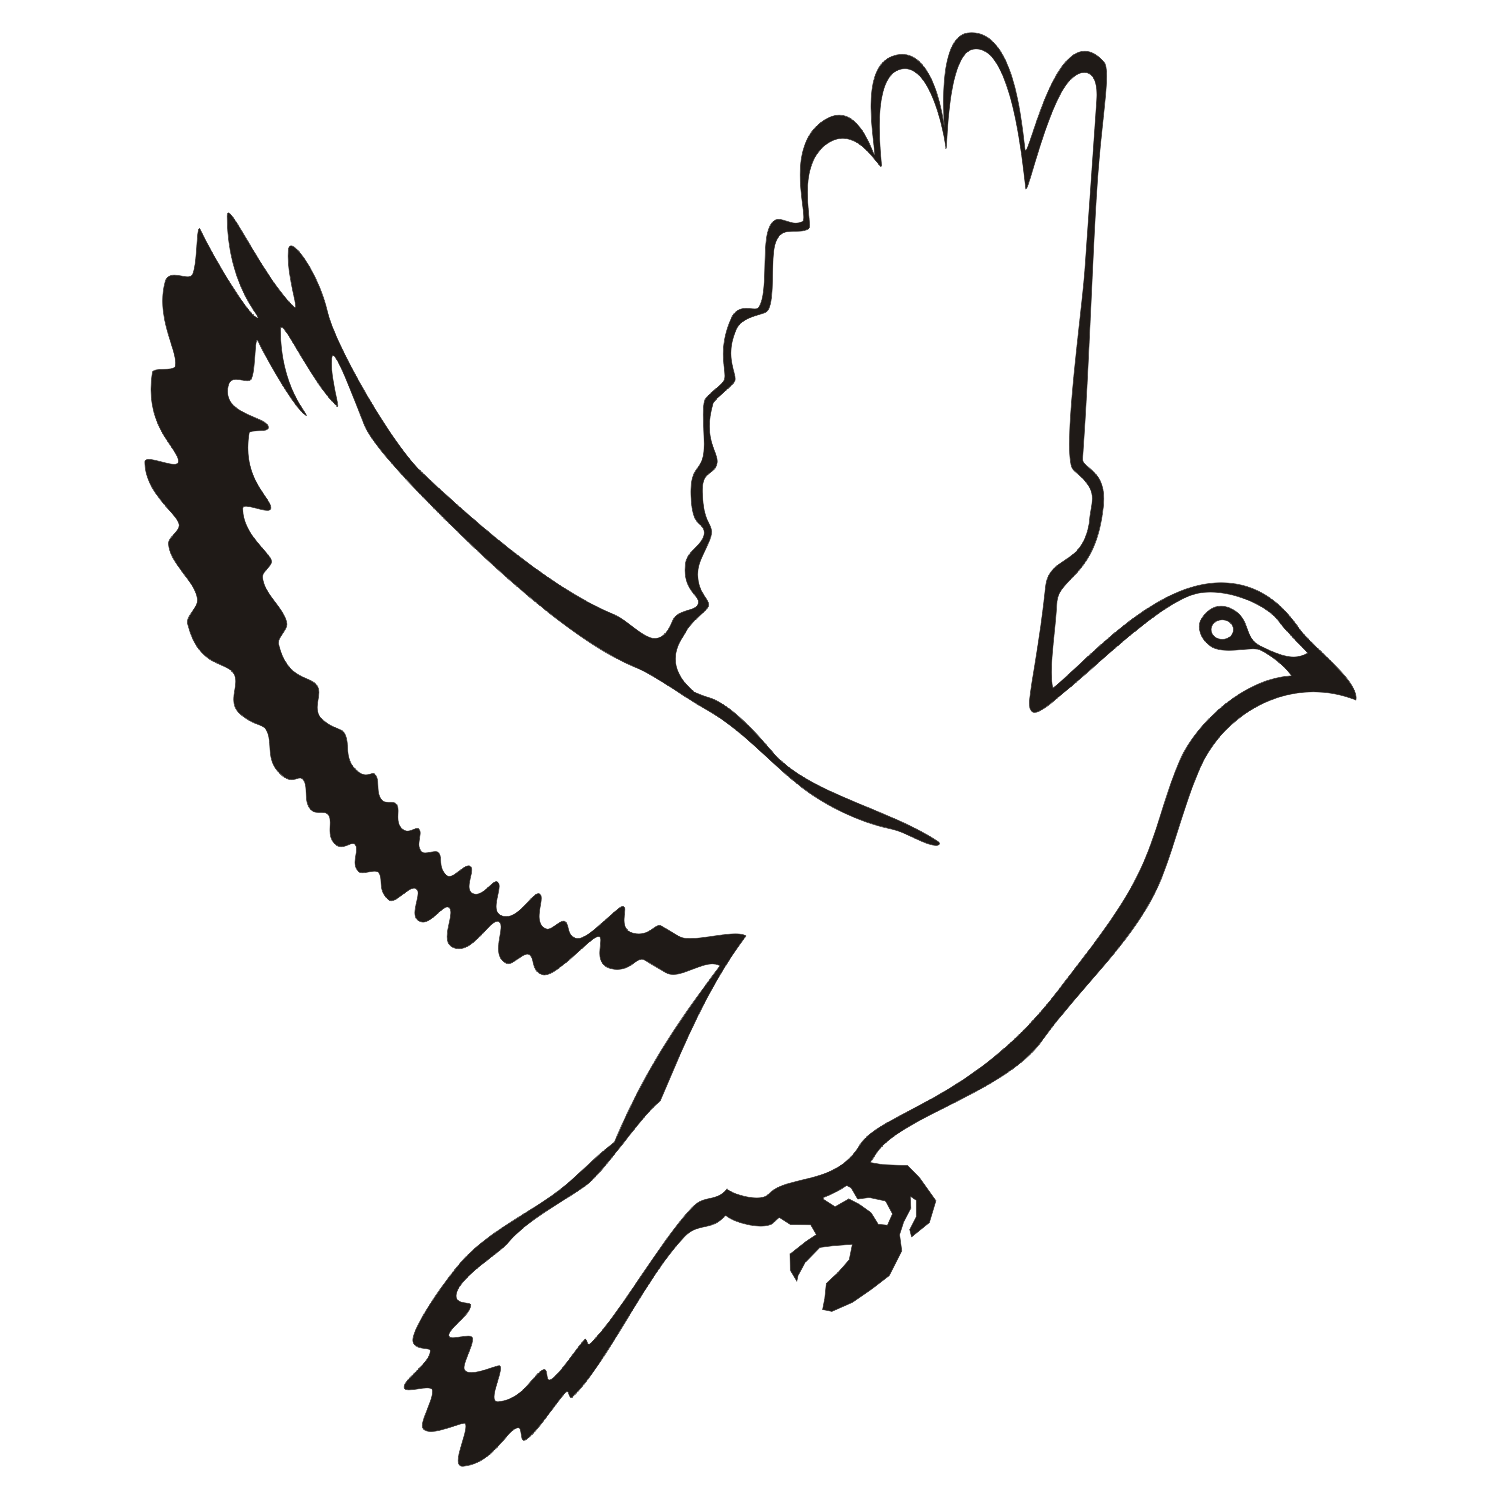 Flying dove with black wing and tail tattoo design